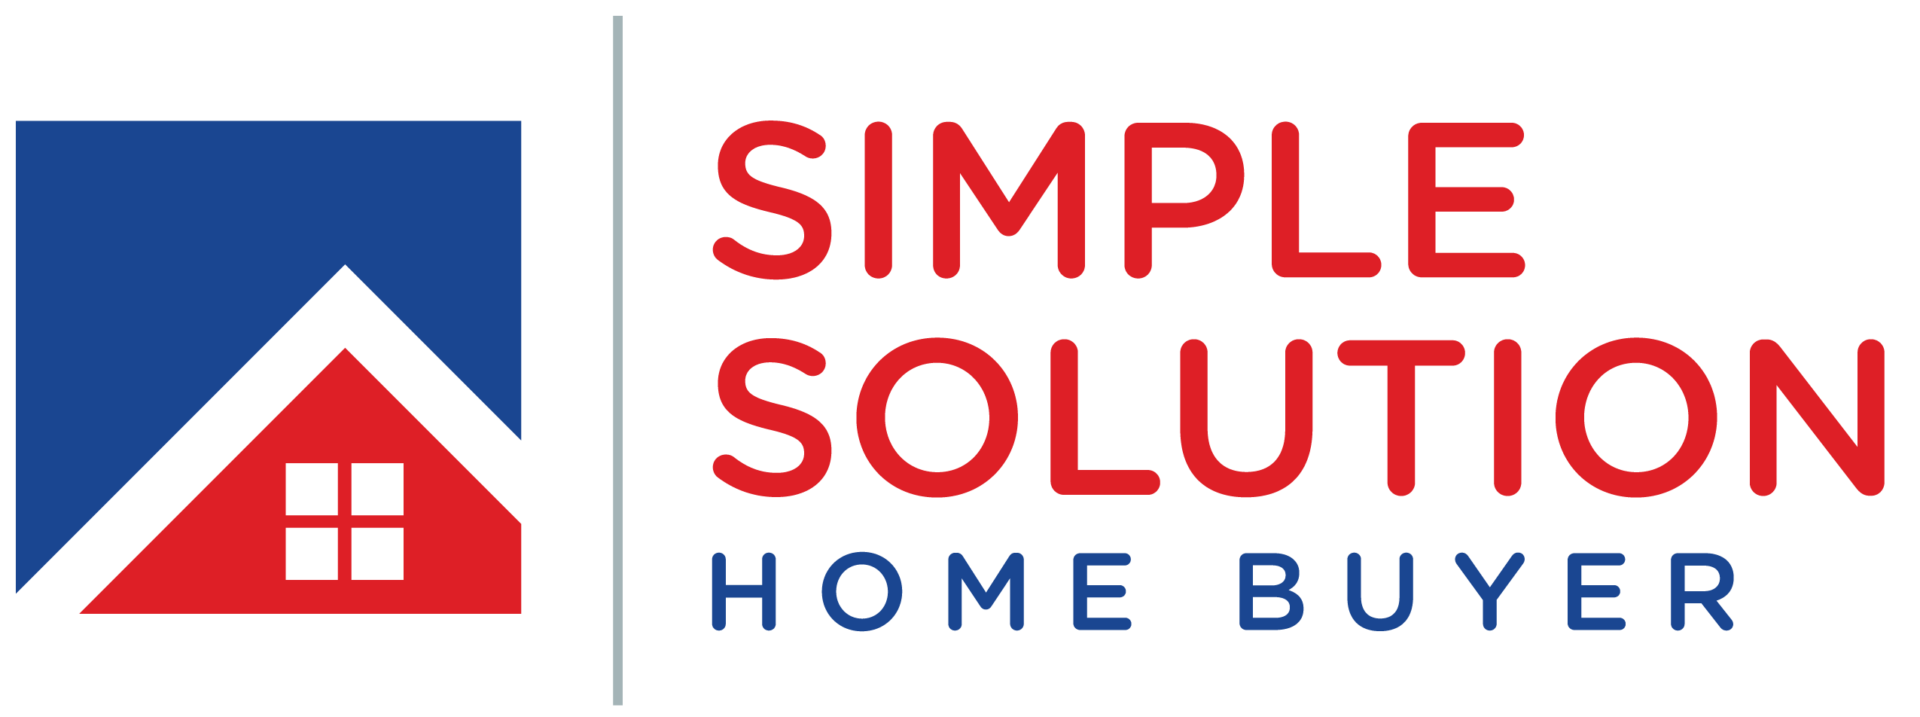 Sell Your House Fast in St. Louis  logo